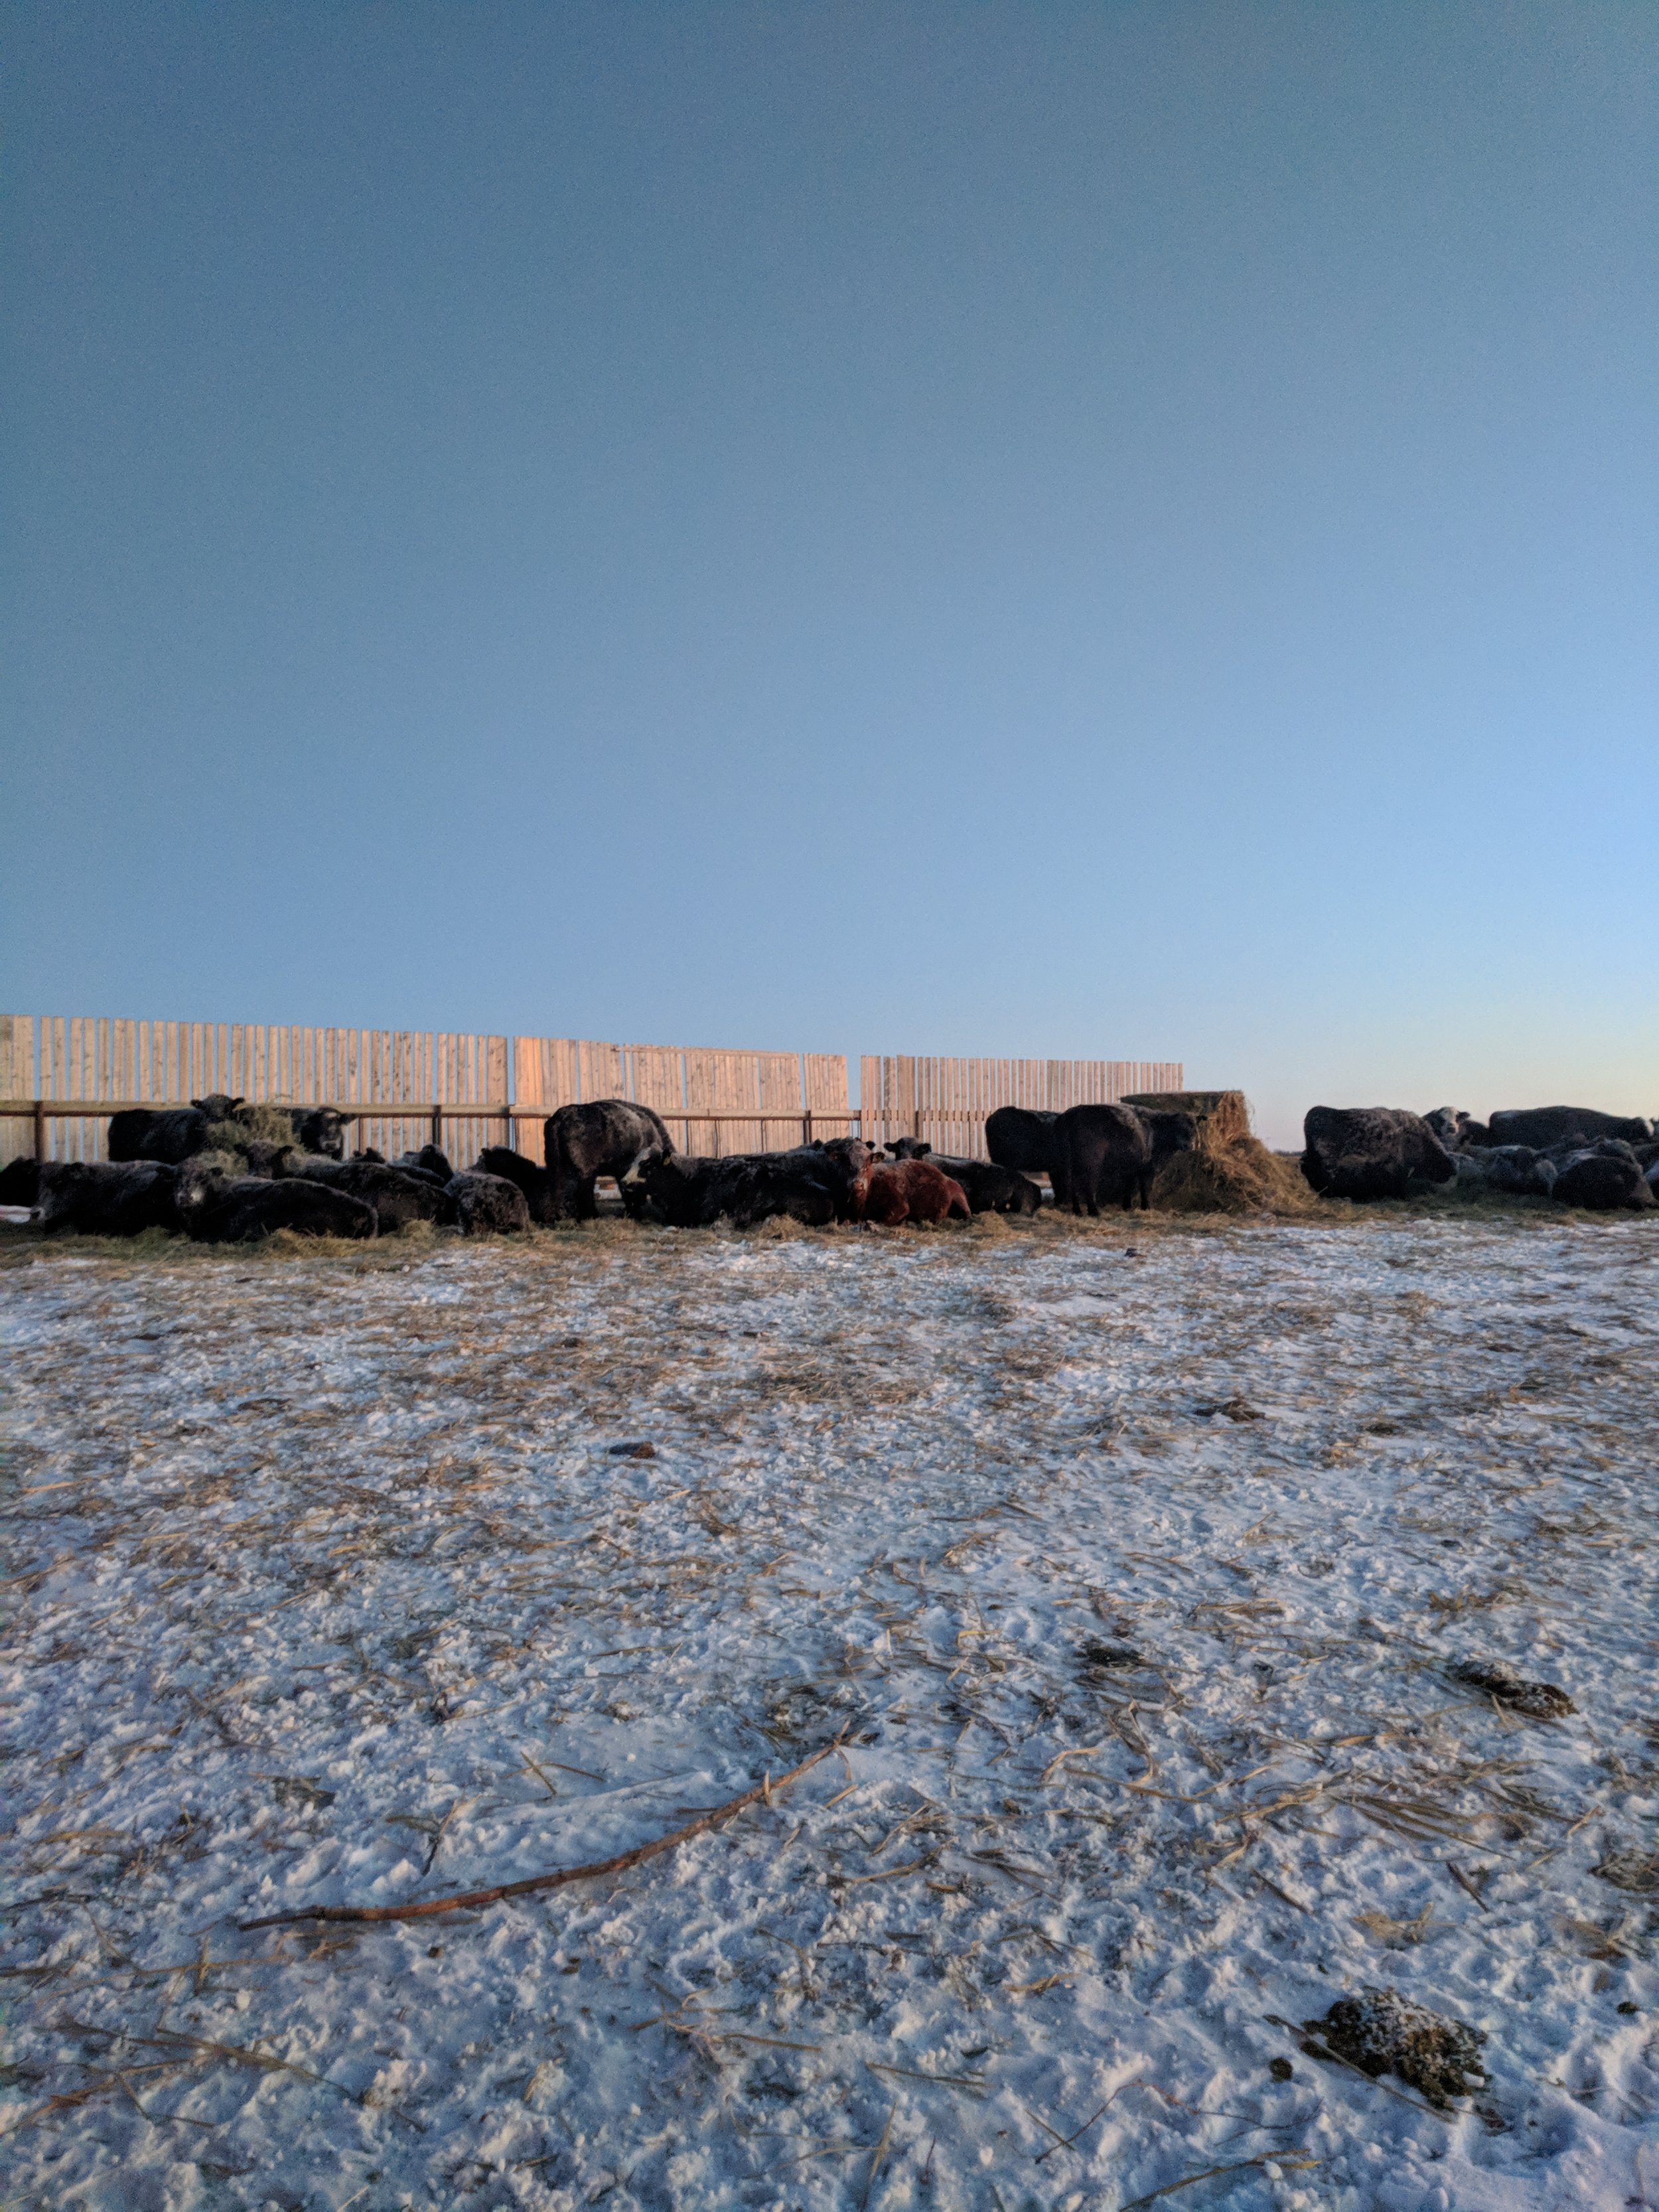 Cattle bale grazing at the Brookdale Location on the Extensive Winter Grazing Project